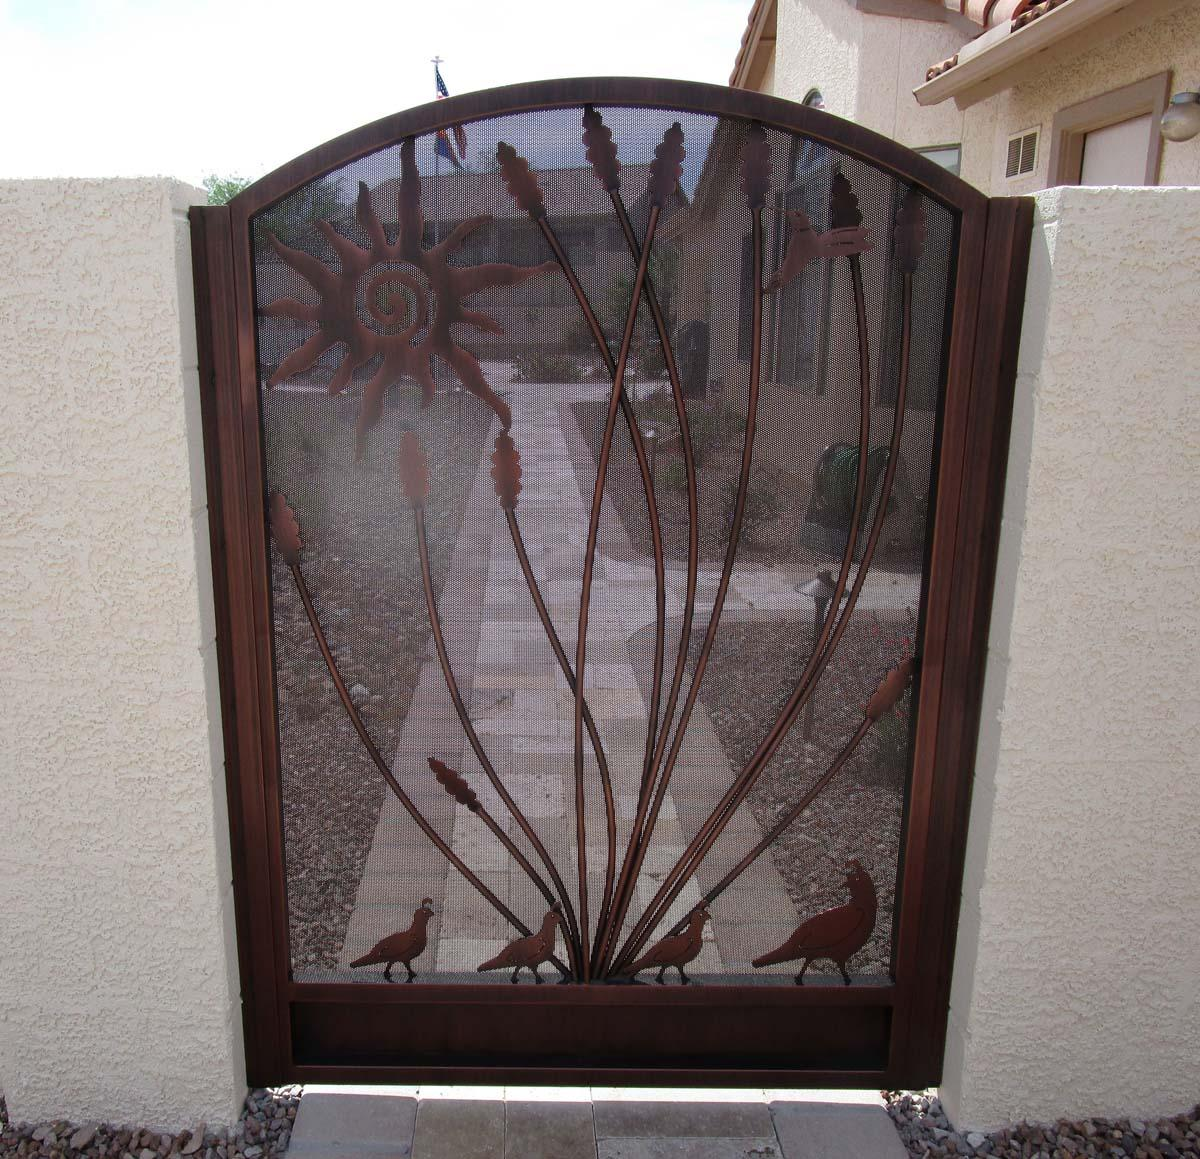 Arched courtyard wrought iron gate with bronze finish, ocotillo and sun motif IMG 0488